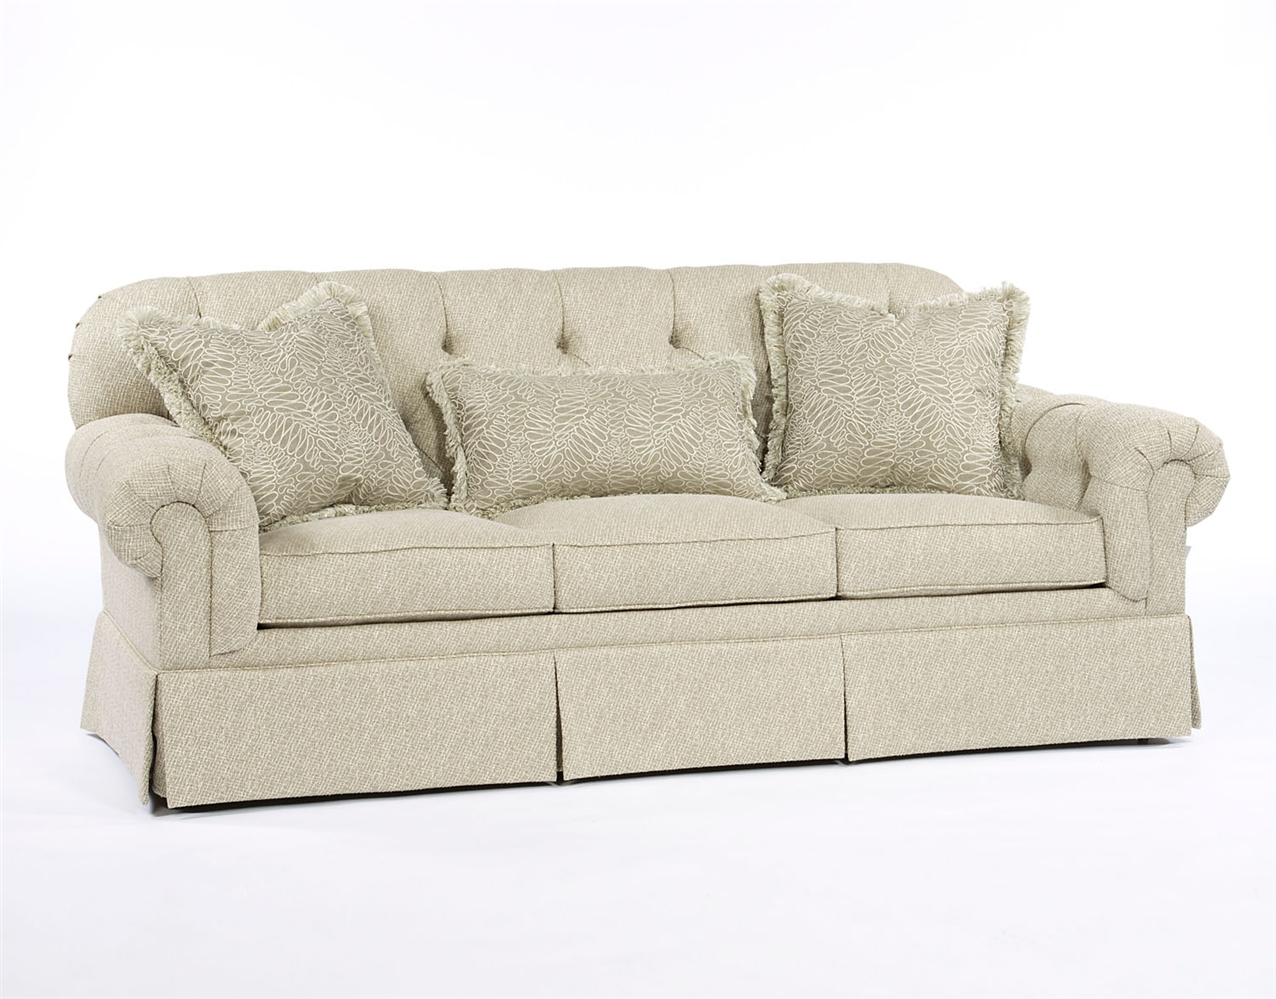 Transitional Tufted Sofa ~ What Is A Transitional Sofa